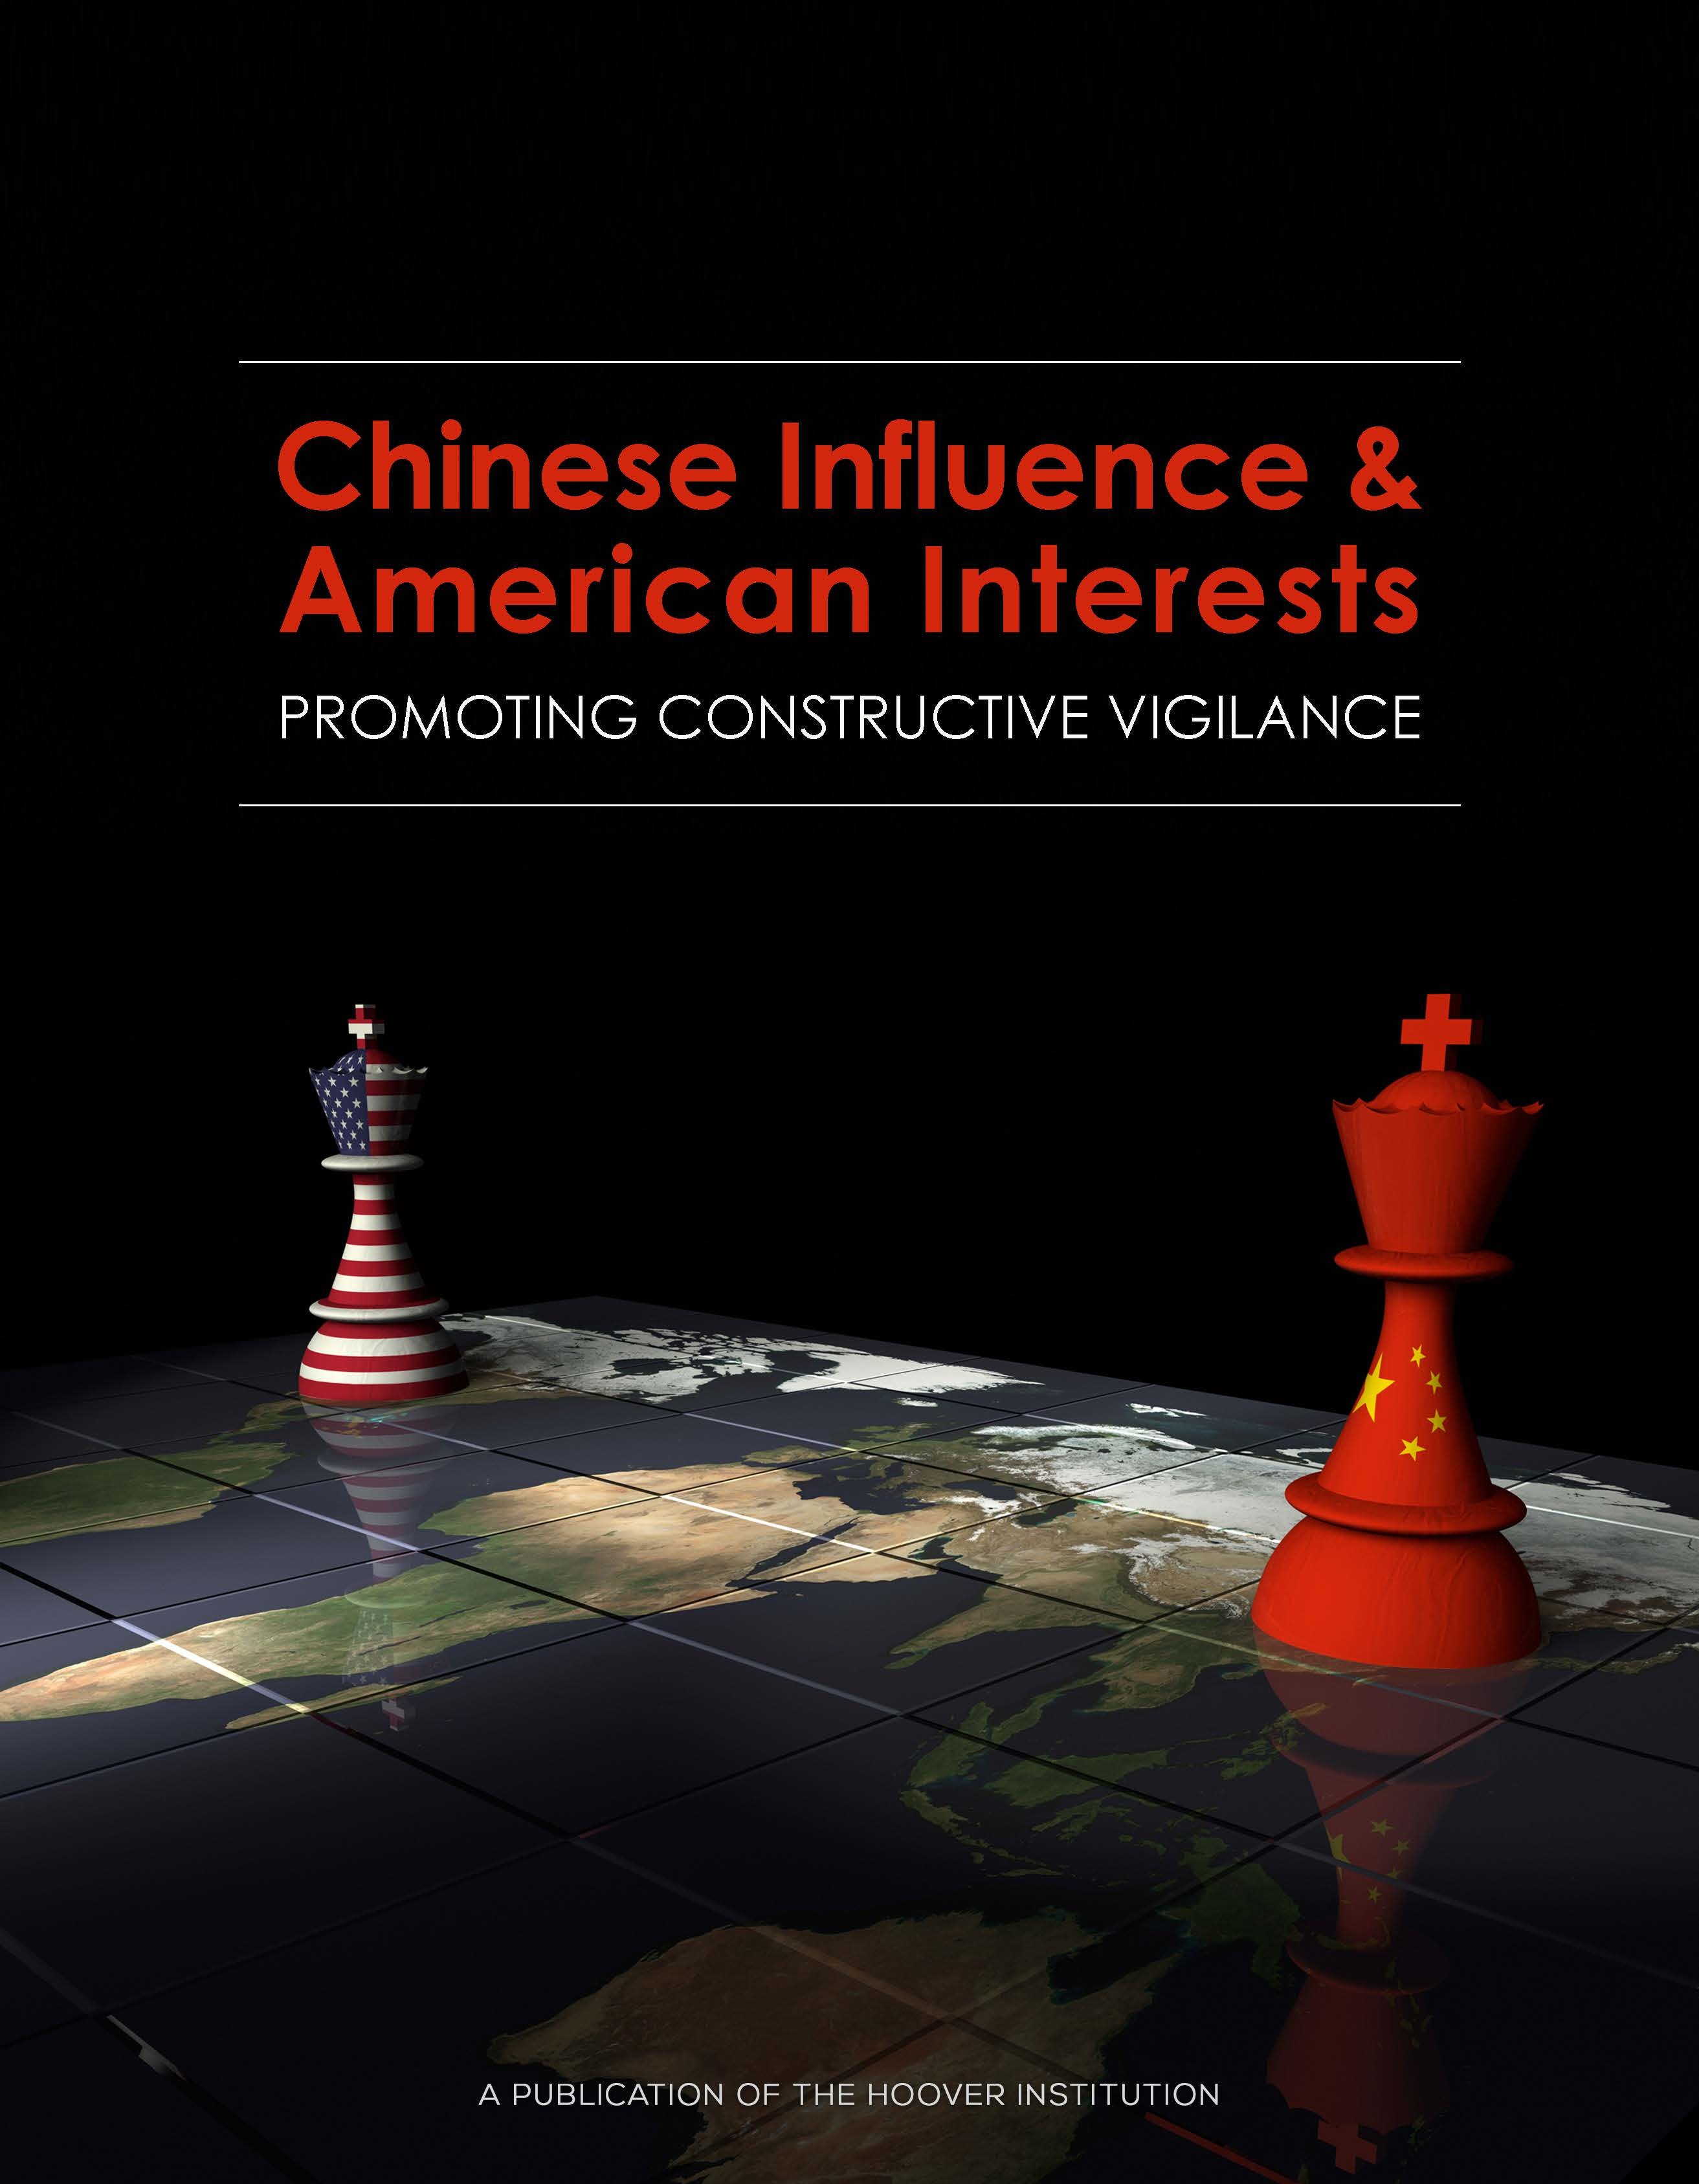 China's Influence & American Interests: Promoting Constructive